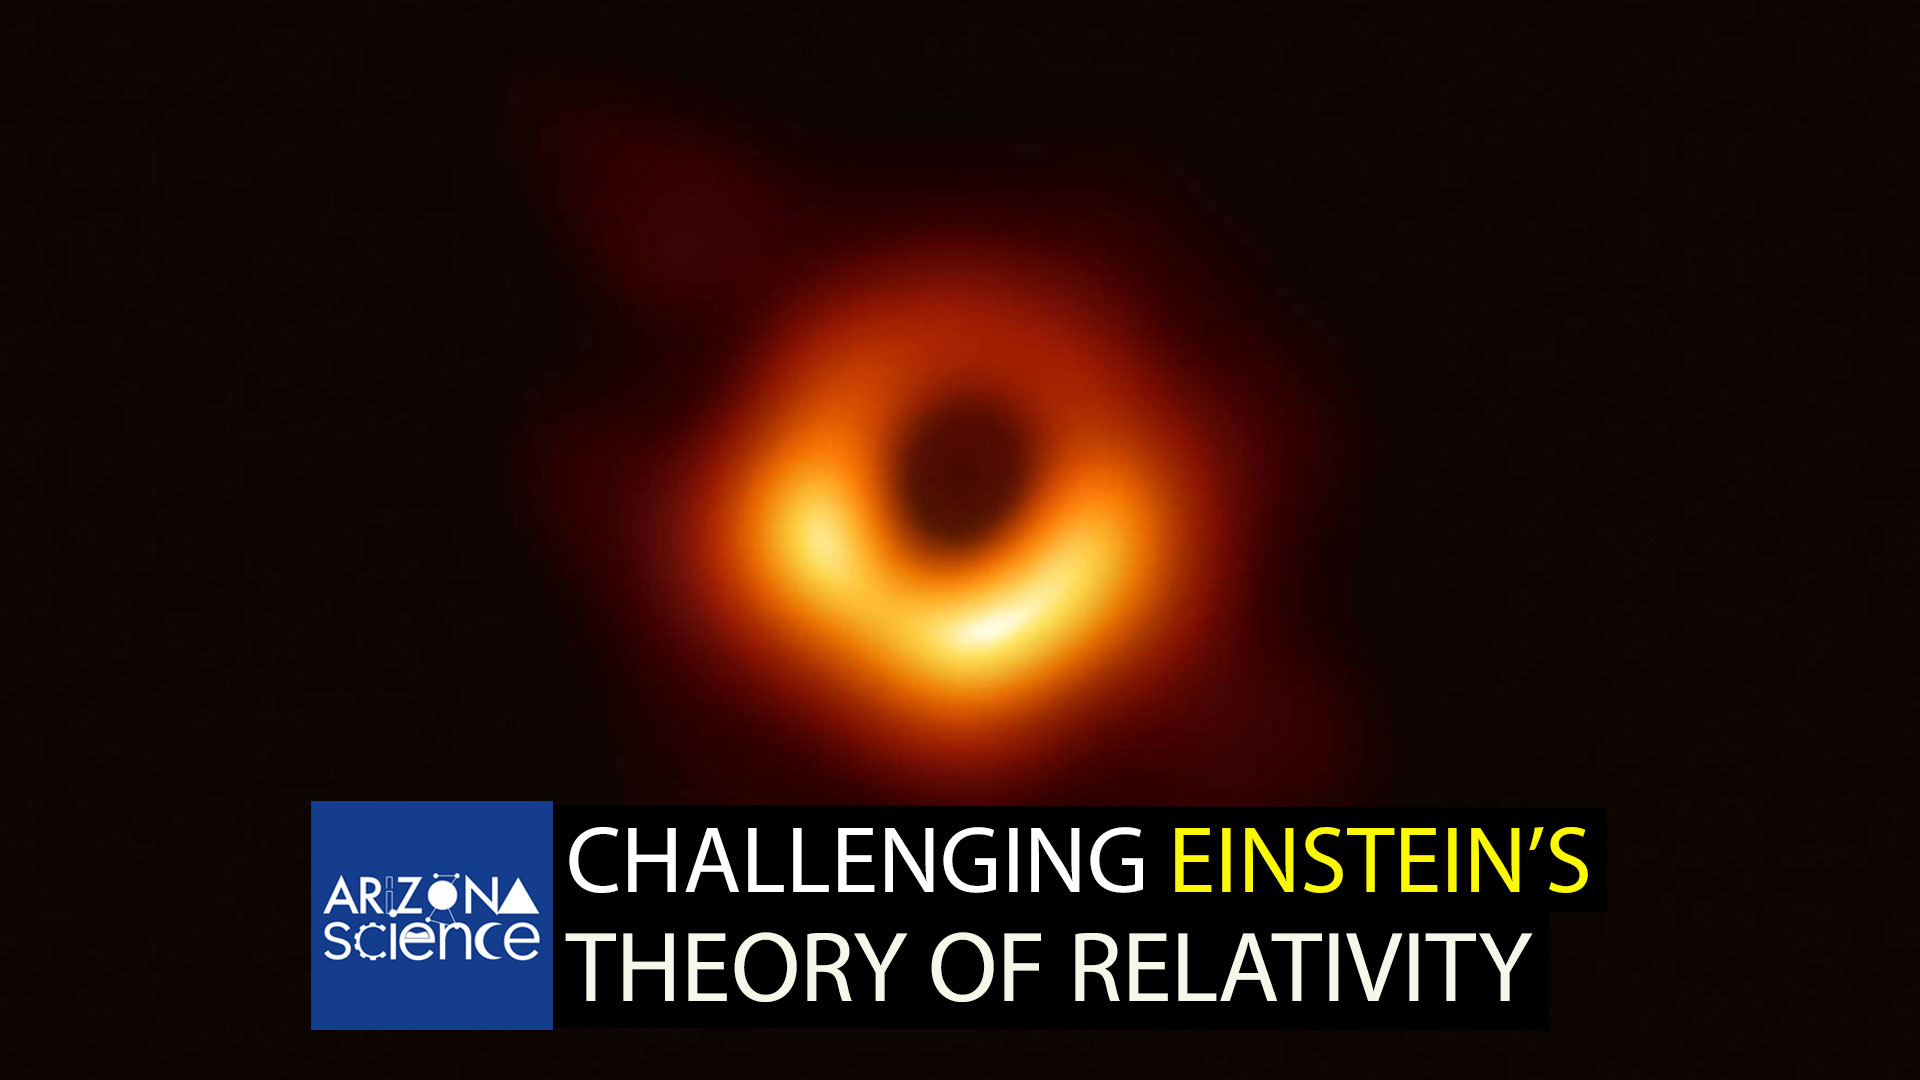 Historic image of a black hole by Event Horizon Telescope.